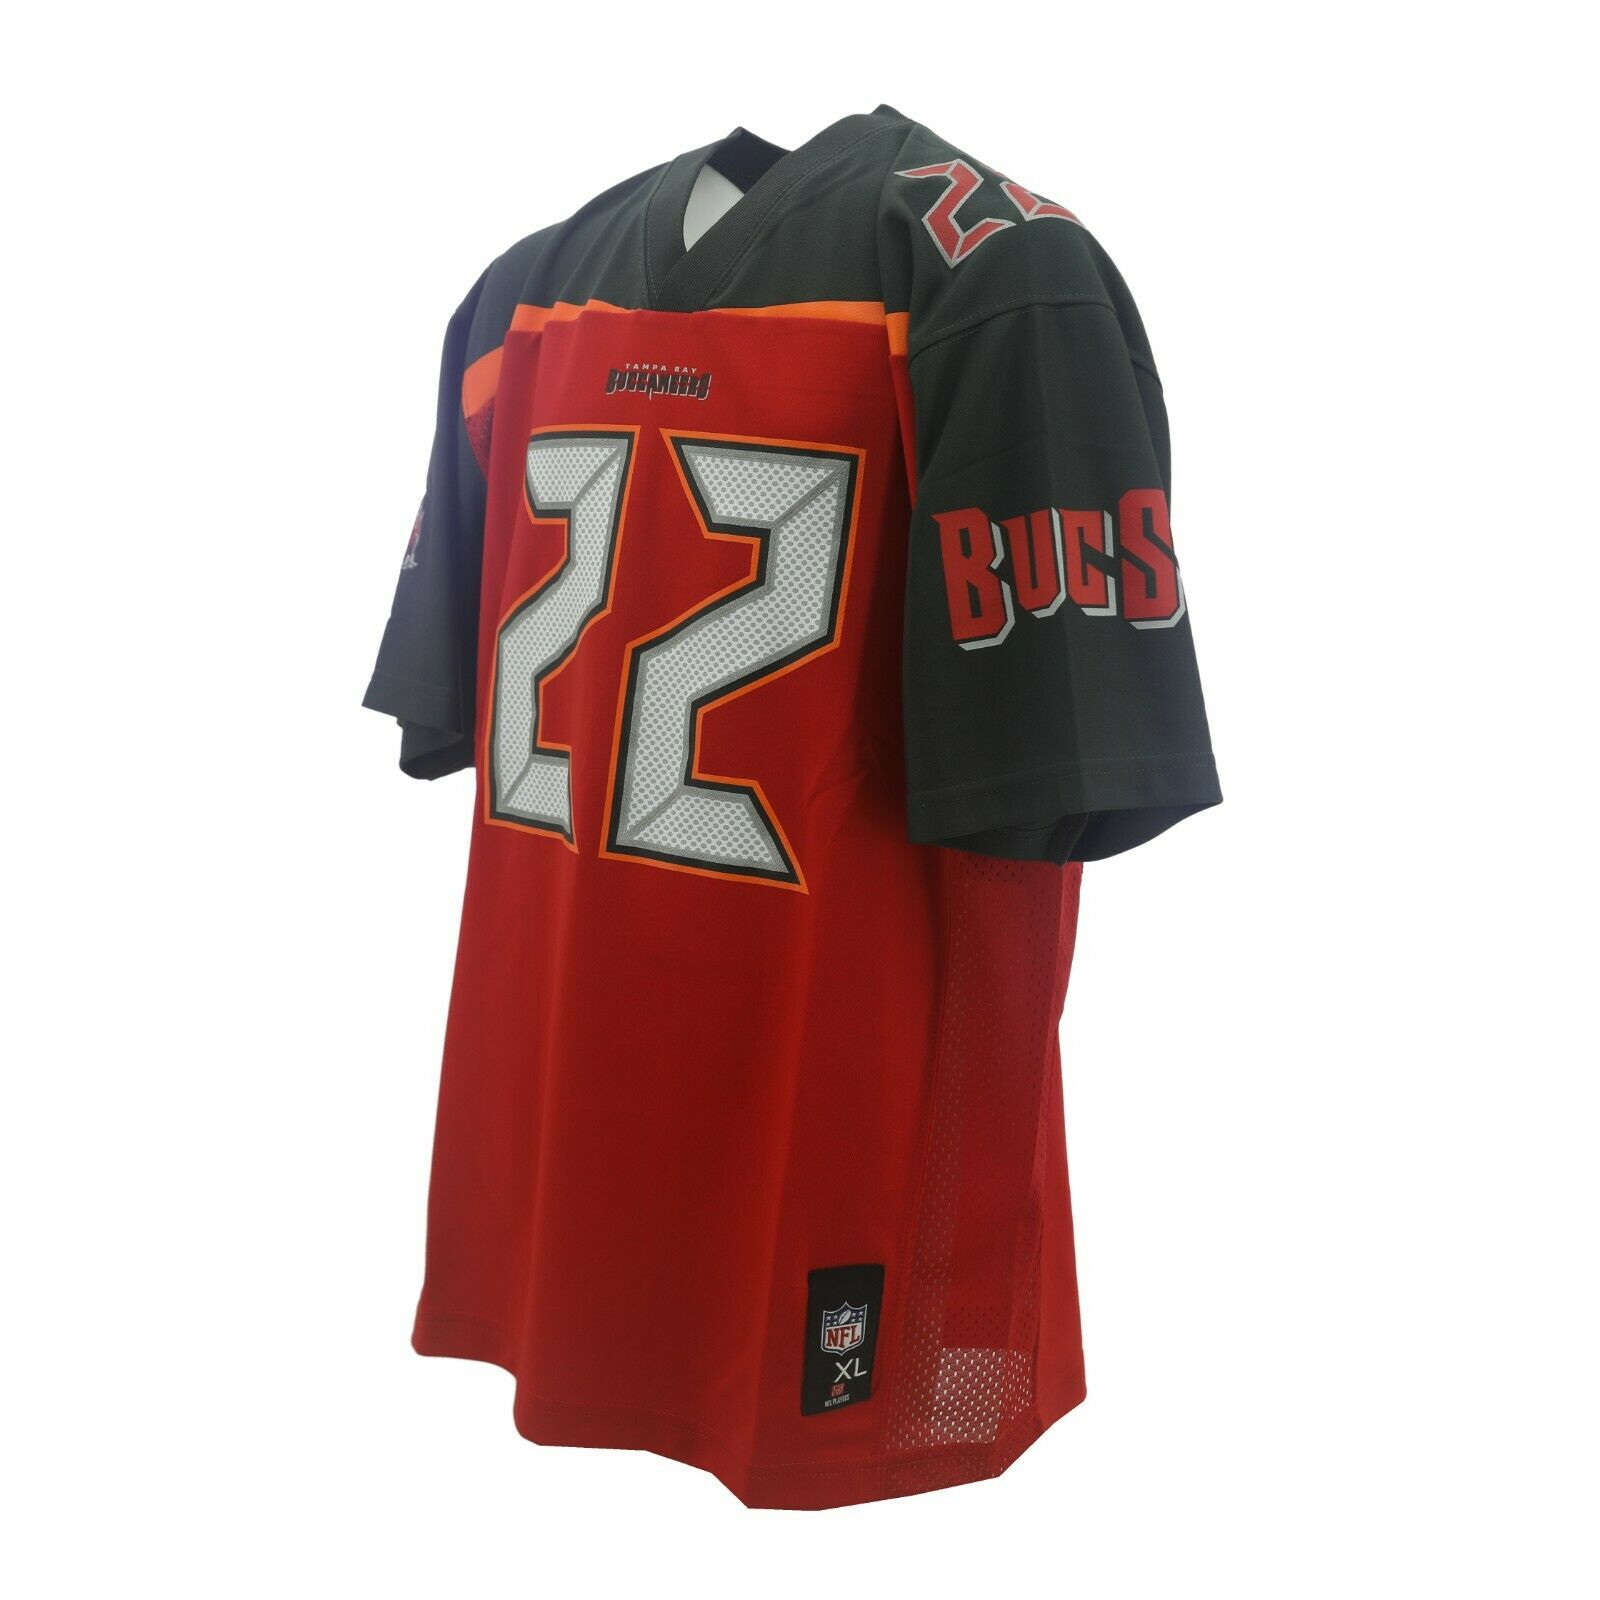 Tampa Bay Buccaneers Official NFL Apparel Kids Youth Size Doug ...